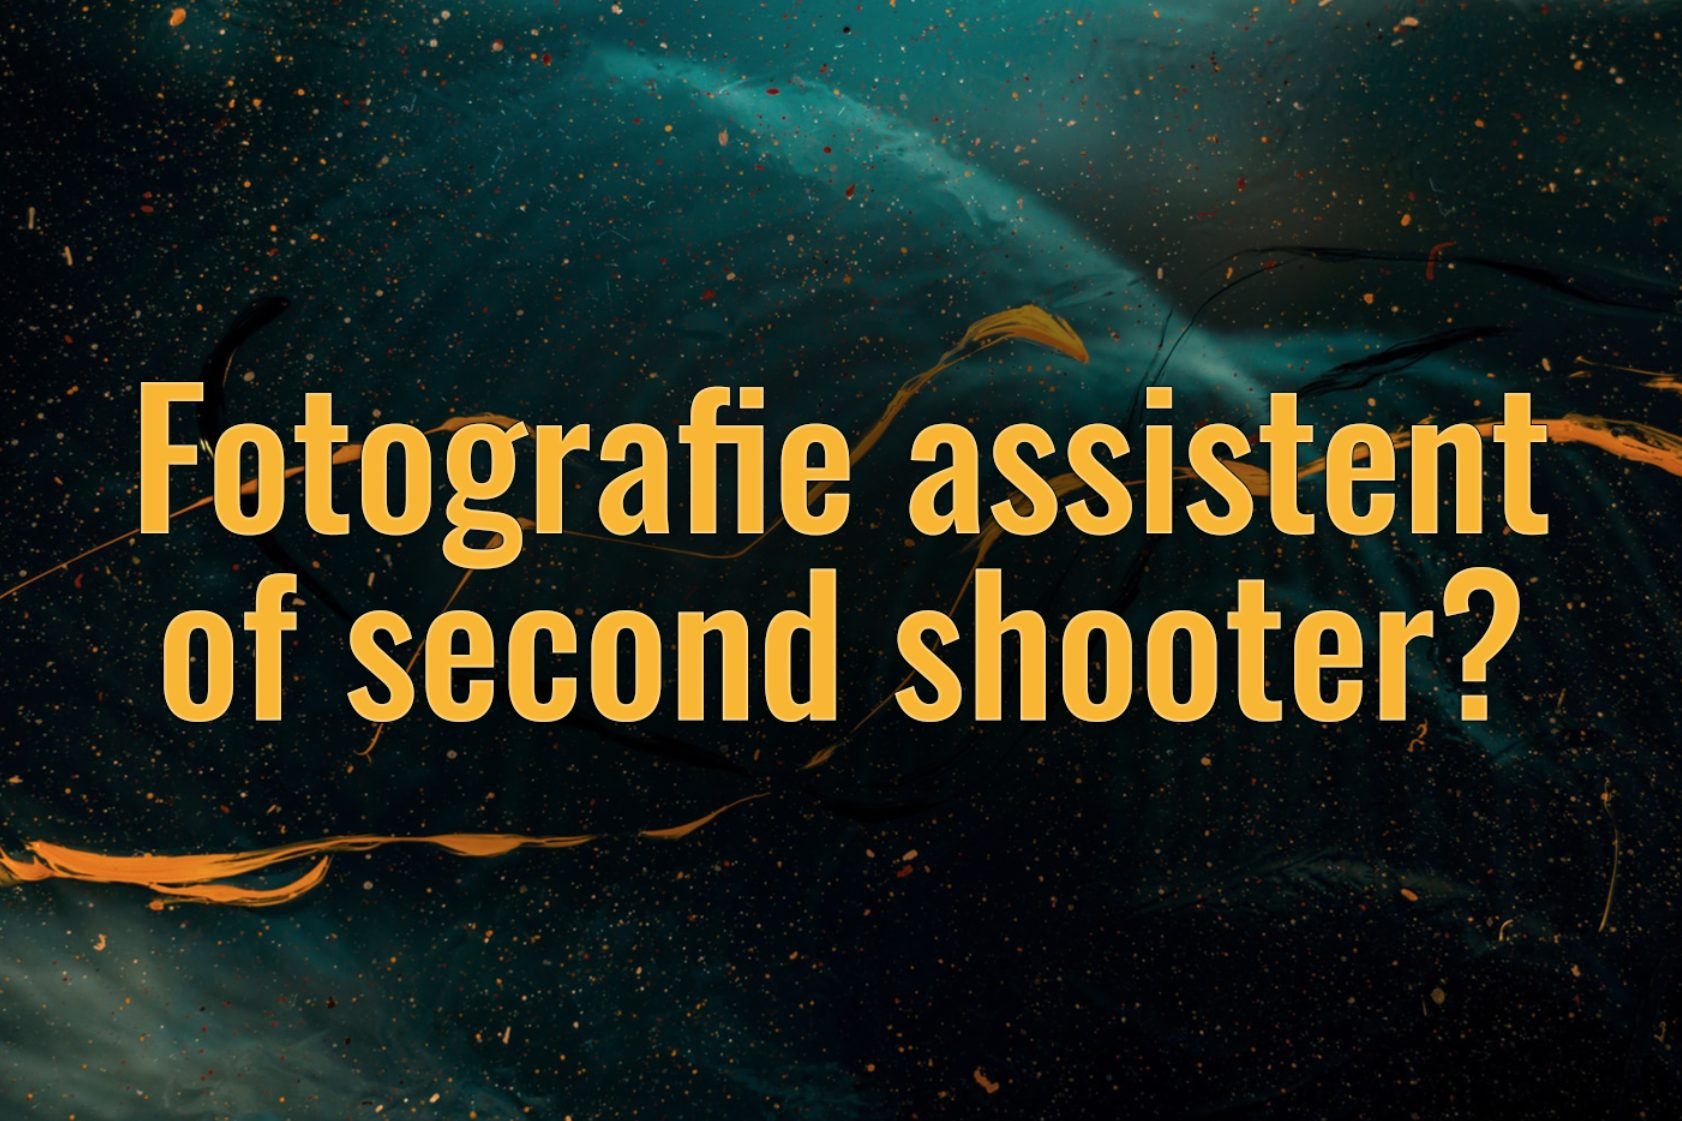 Fotografie assistent of second shooter?